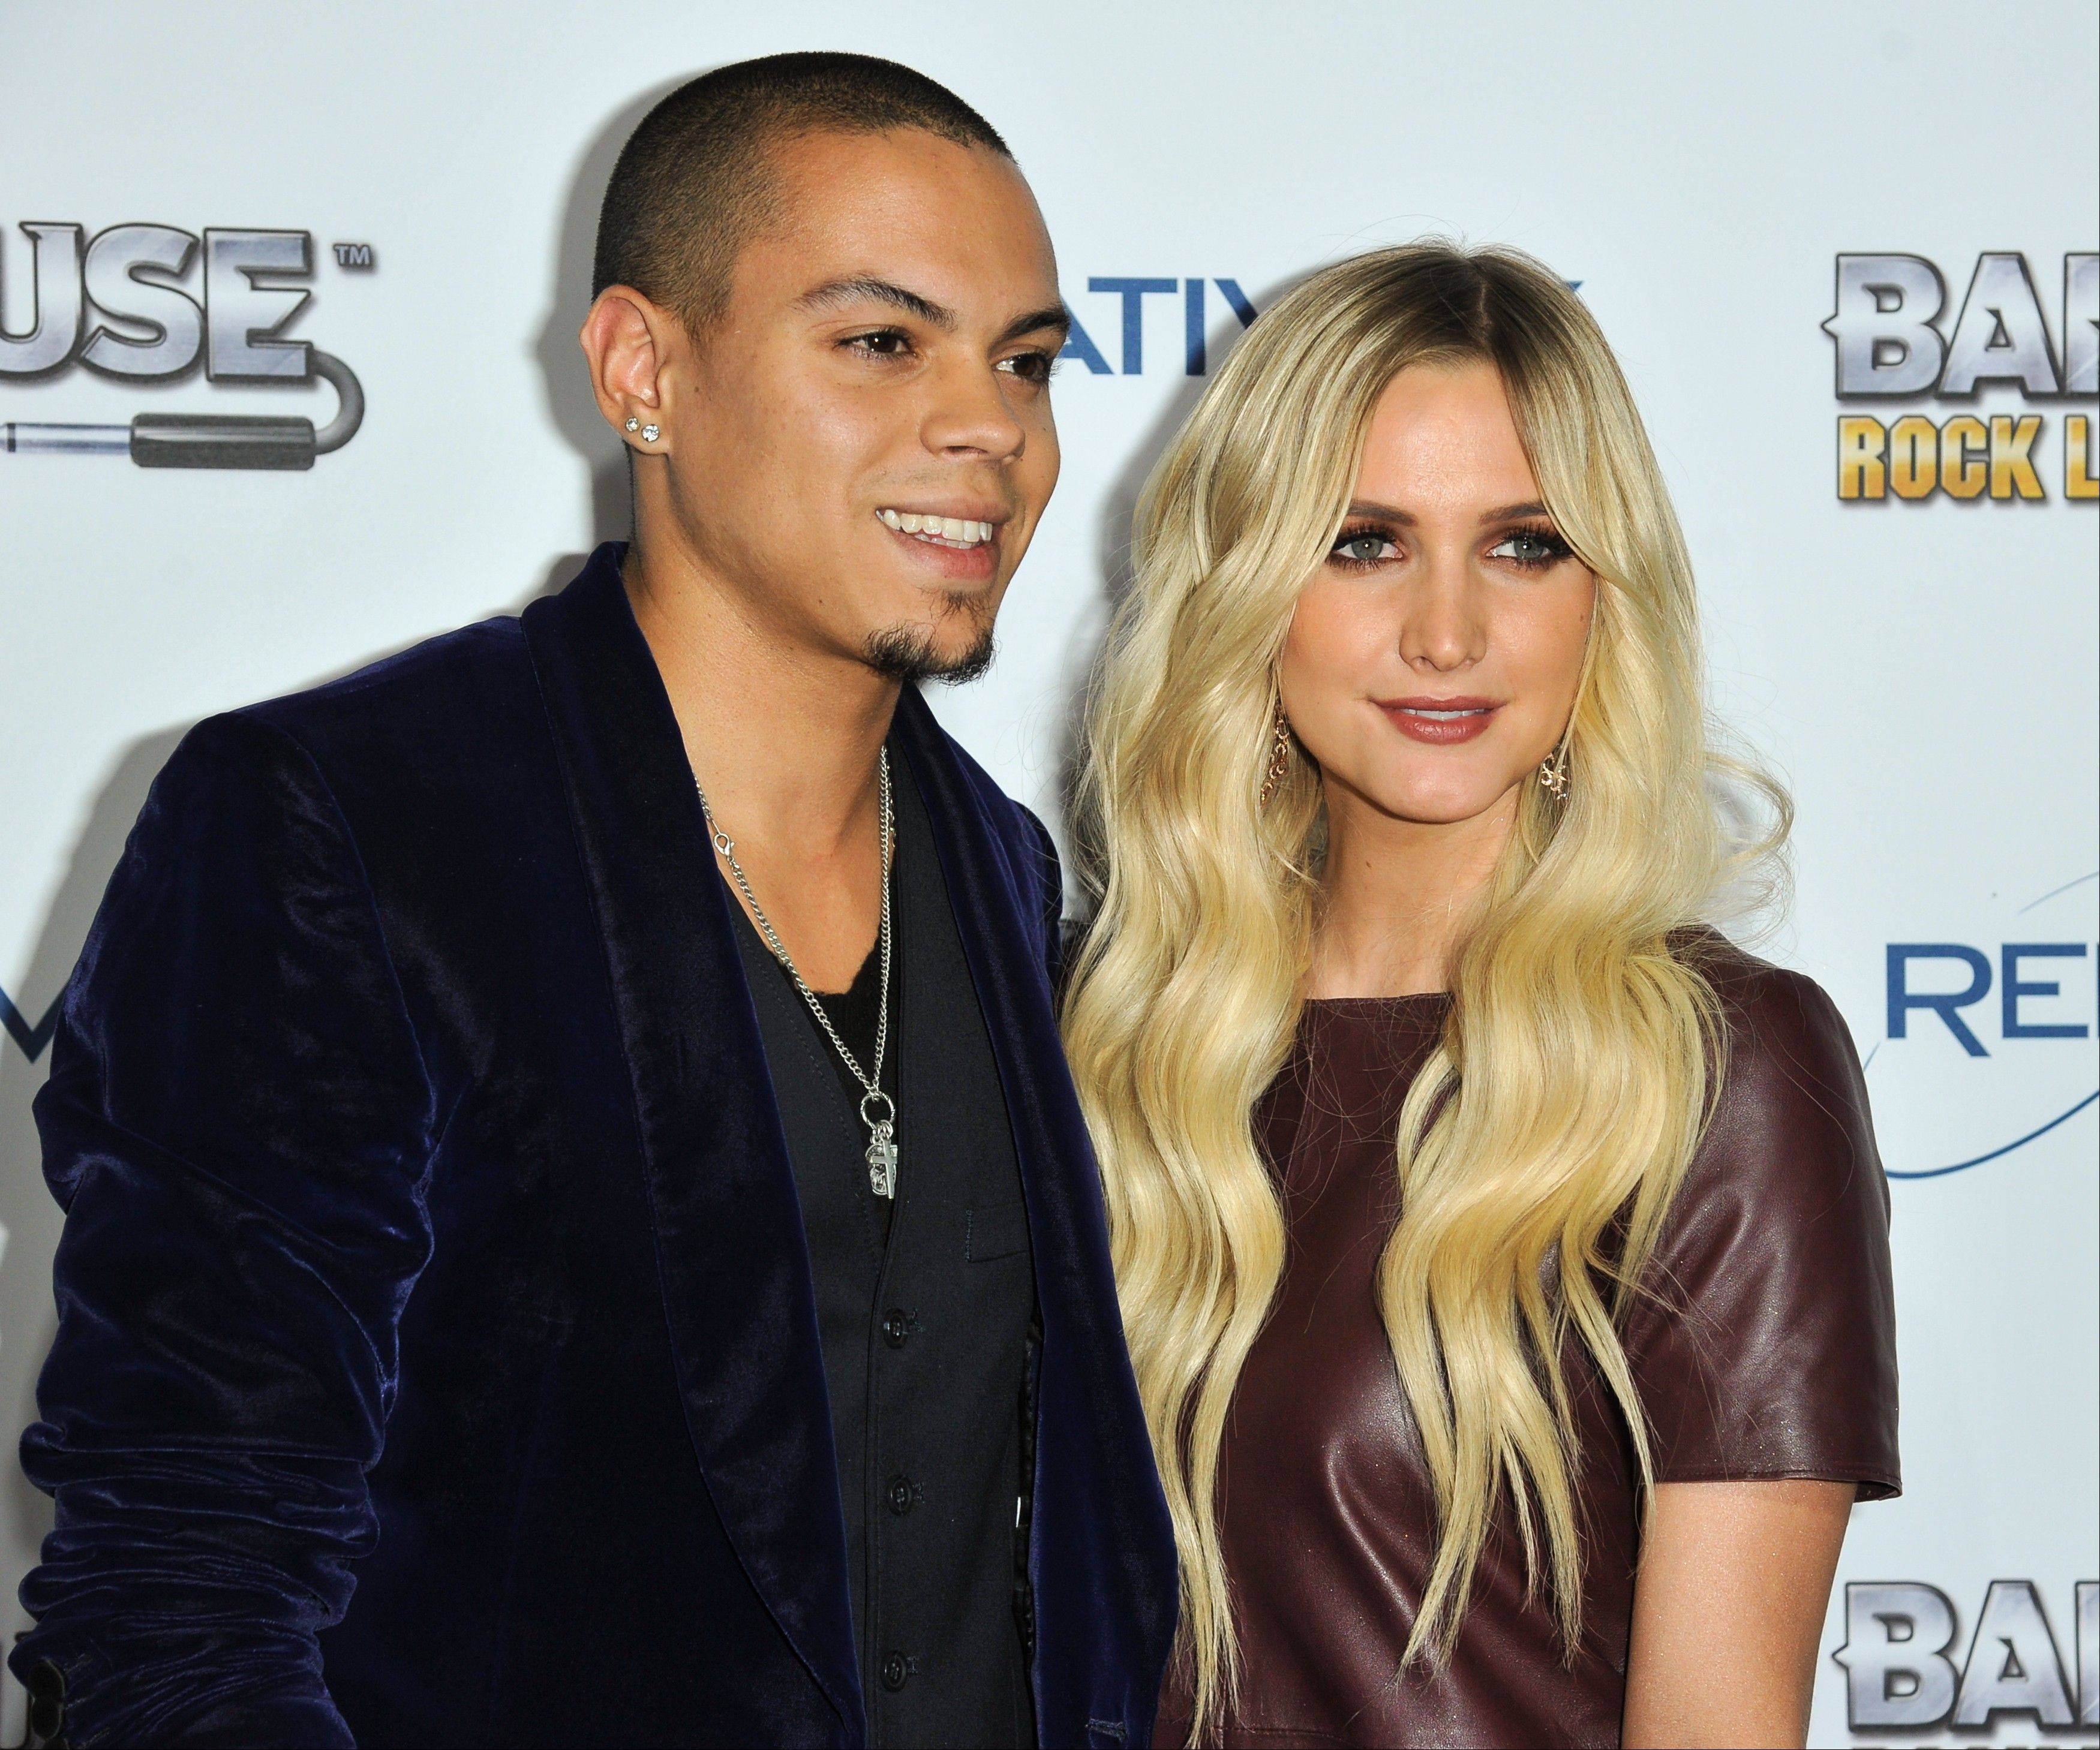 Ashlee Simpson is engaged to boyfriend Evan Ross, who is the son of Diana Ross. The pair announced the news on Twitter Monday.